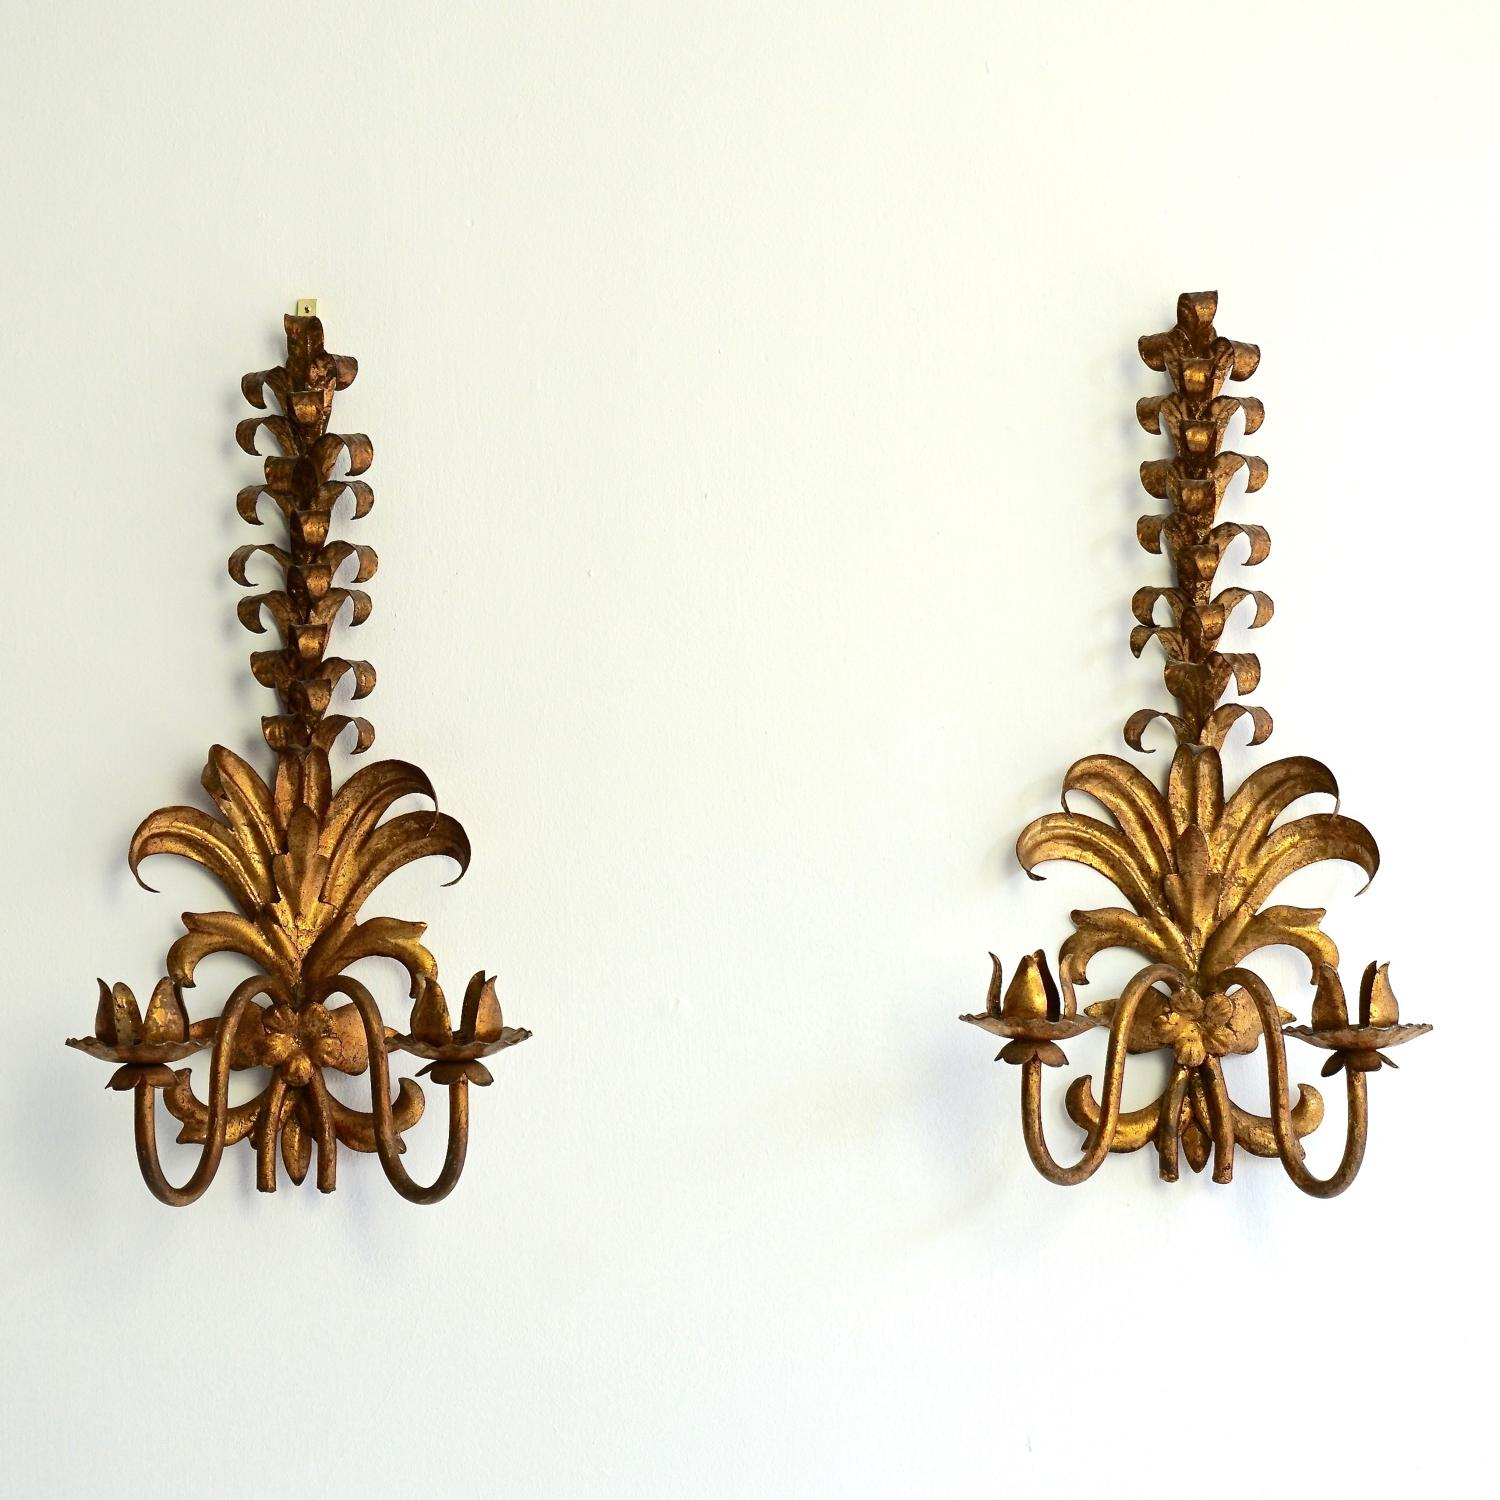 PAIR OF VERY RARE GILT TOLLE SCONCES